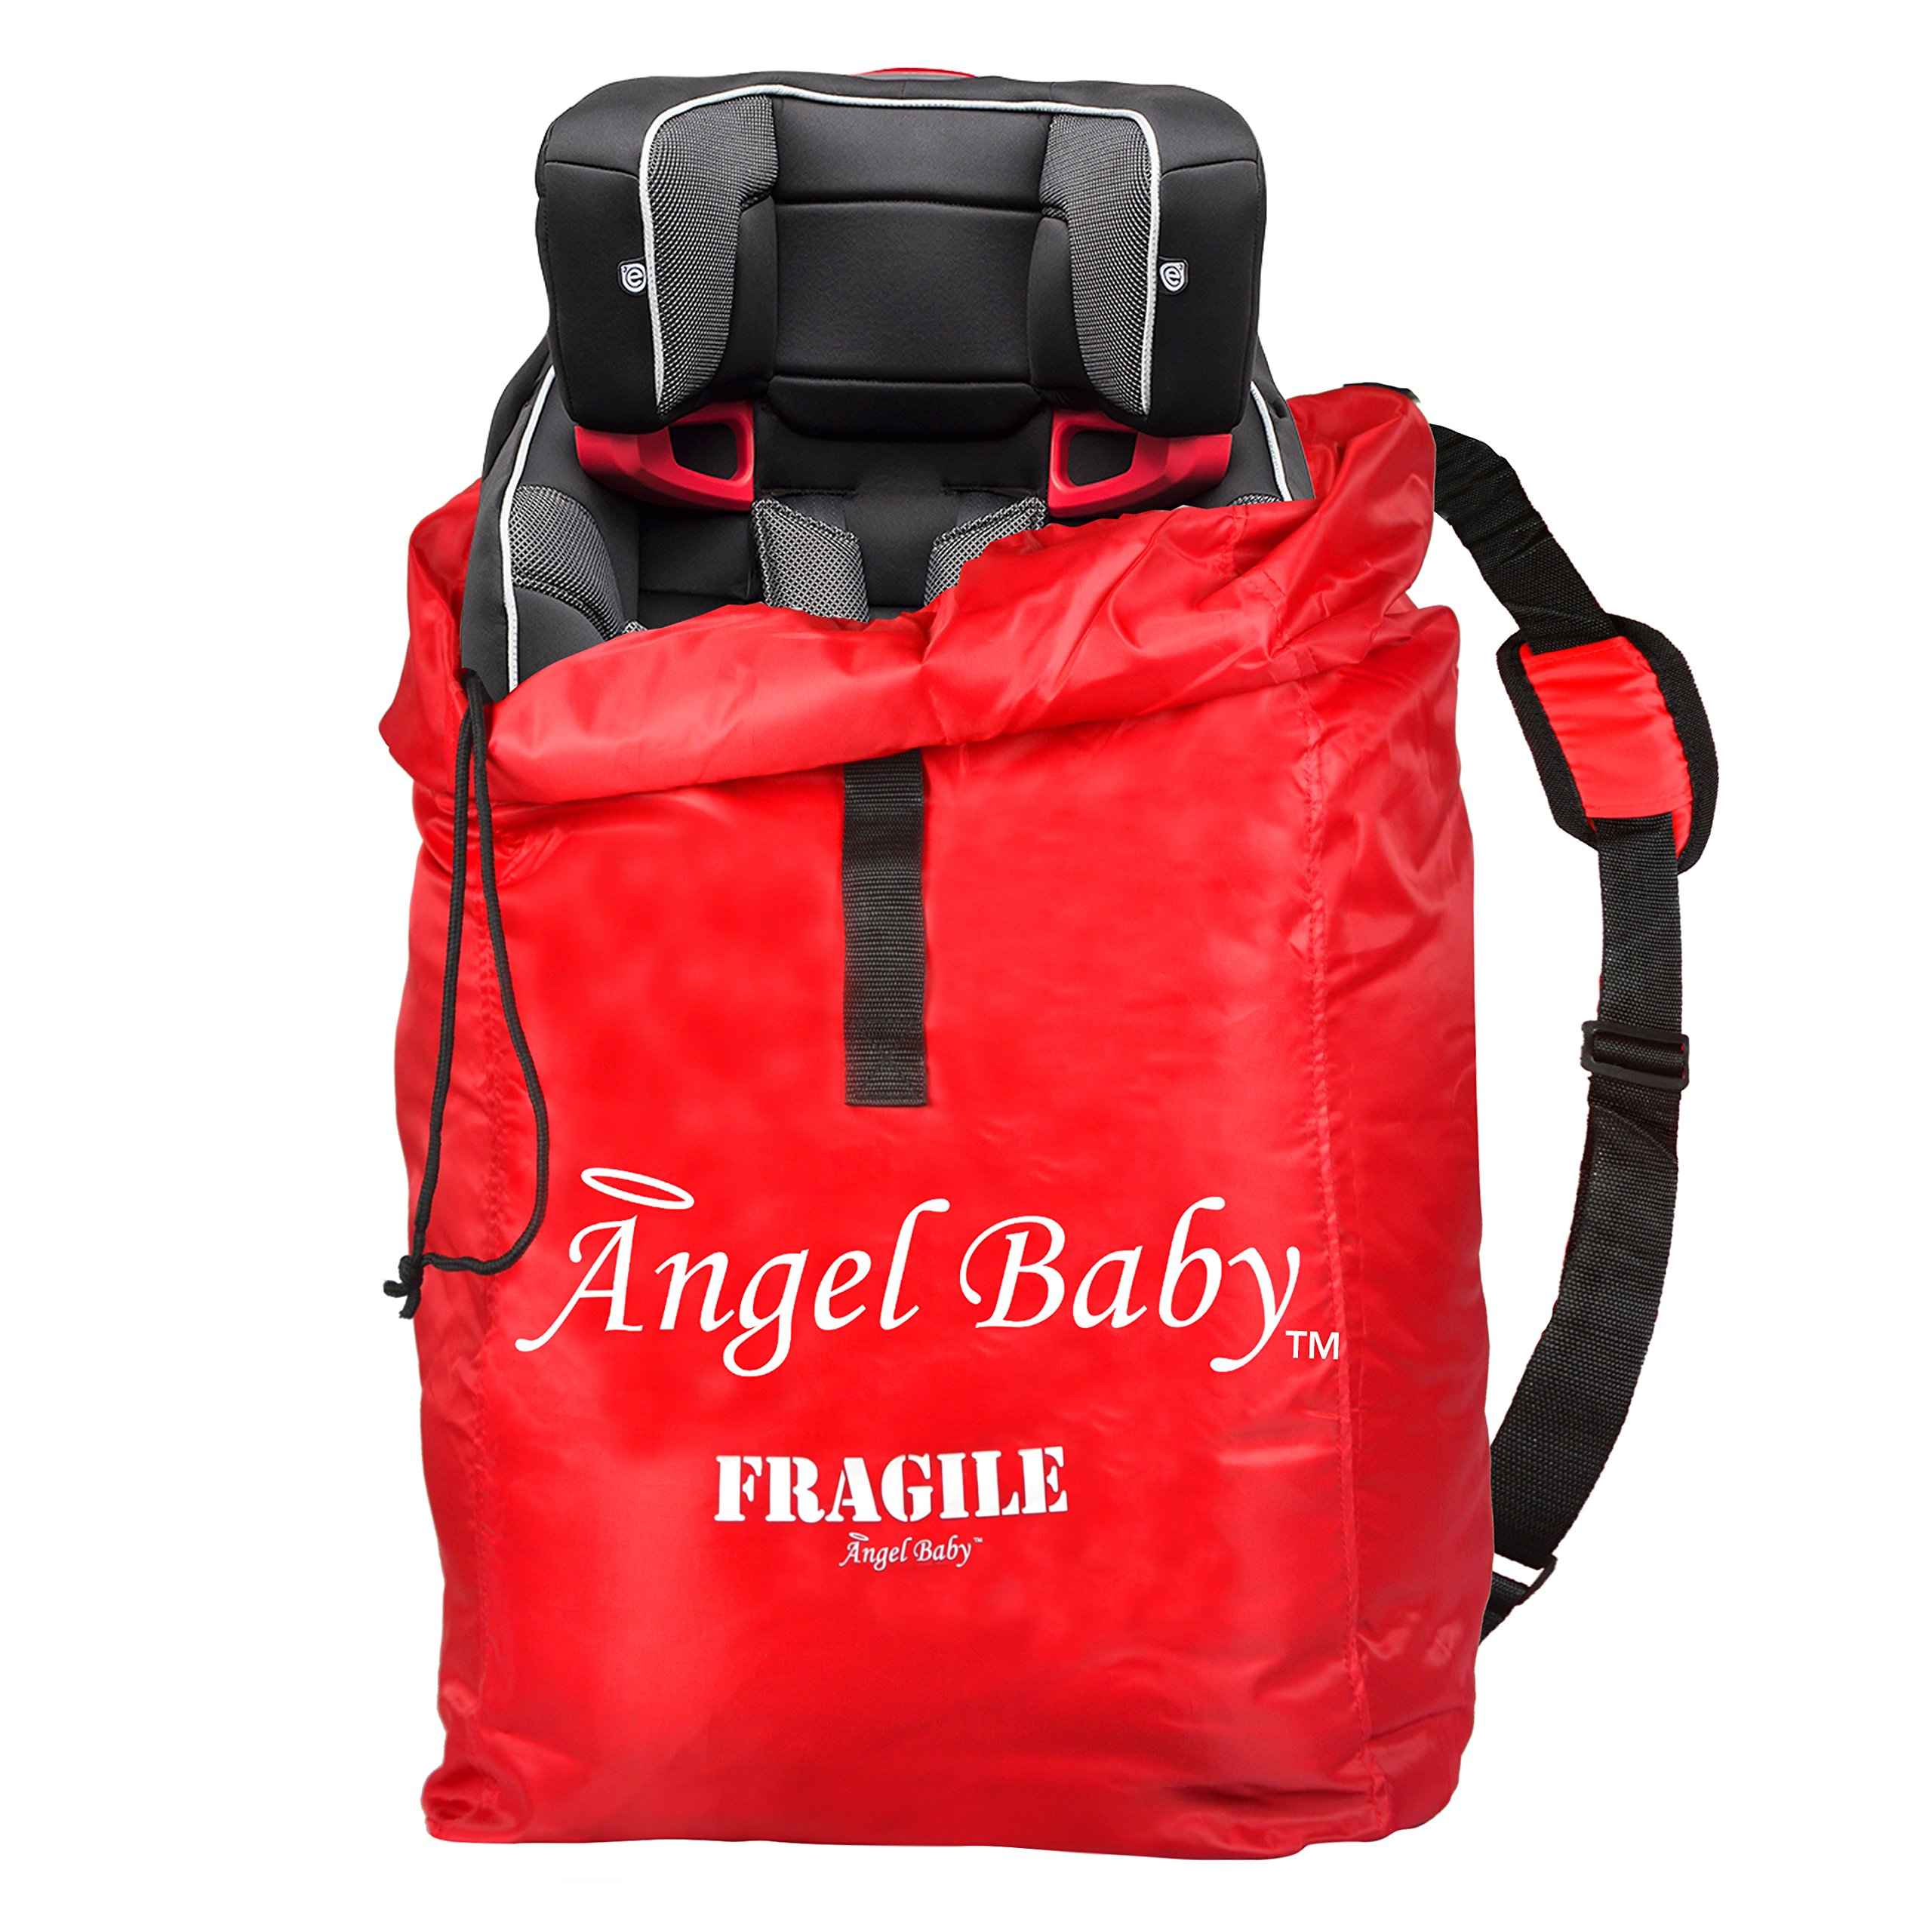 Angel Baby Car Seat Travel Bag for Air Travel: Carseat Bag for Gate Check, Red by Angel Direct Products